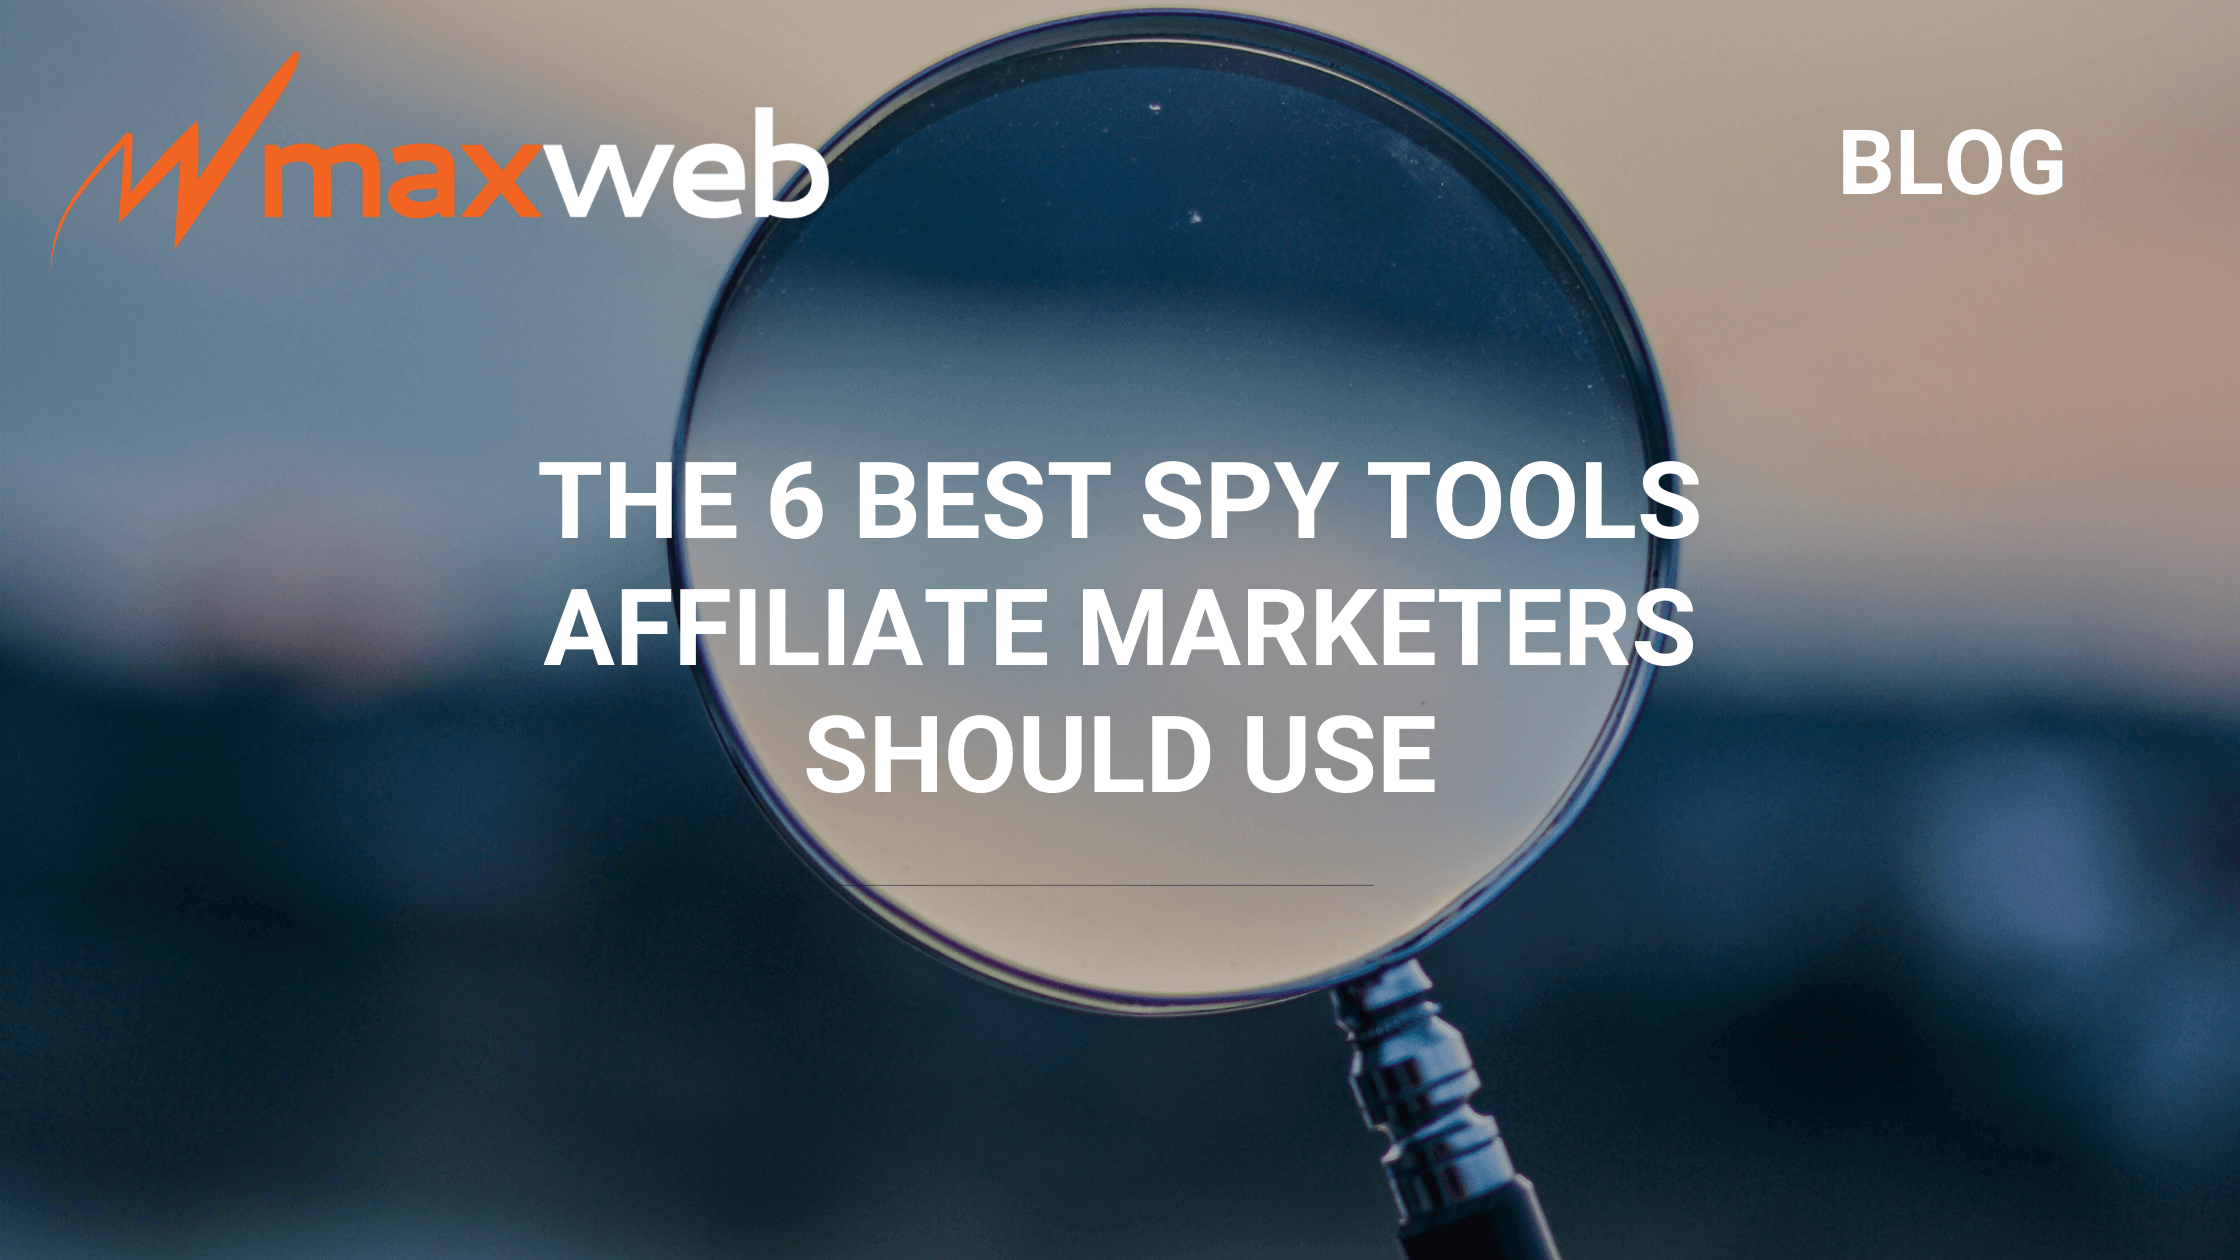 The 6 Best Spy Tools Affiliate Marketers Should Use